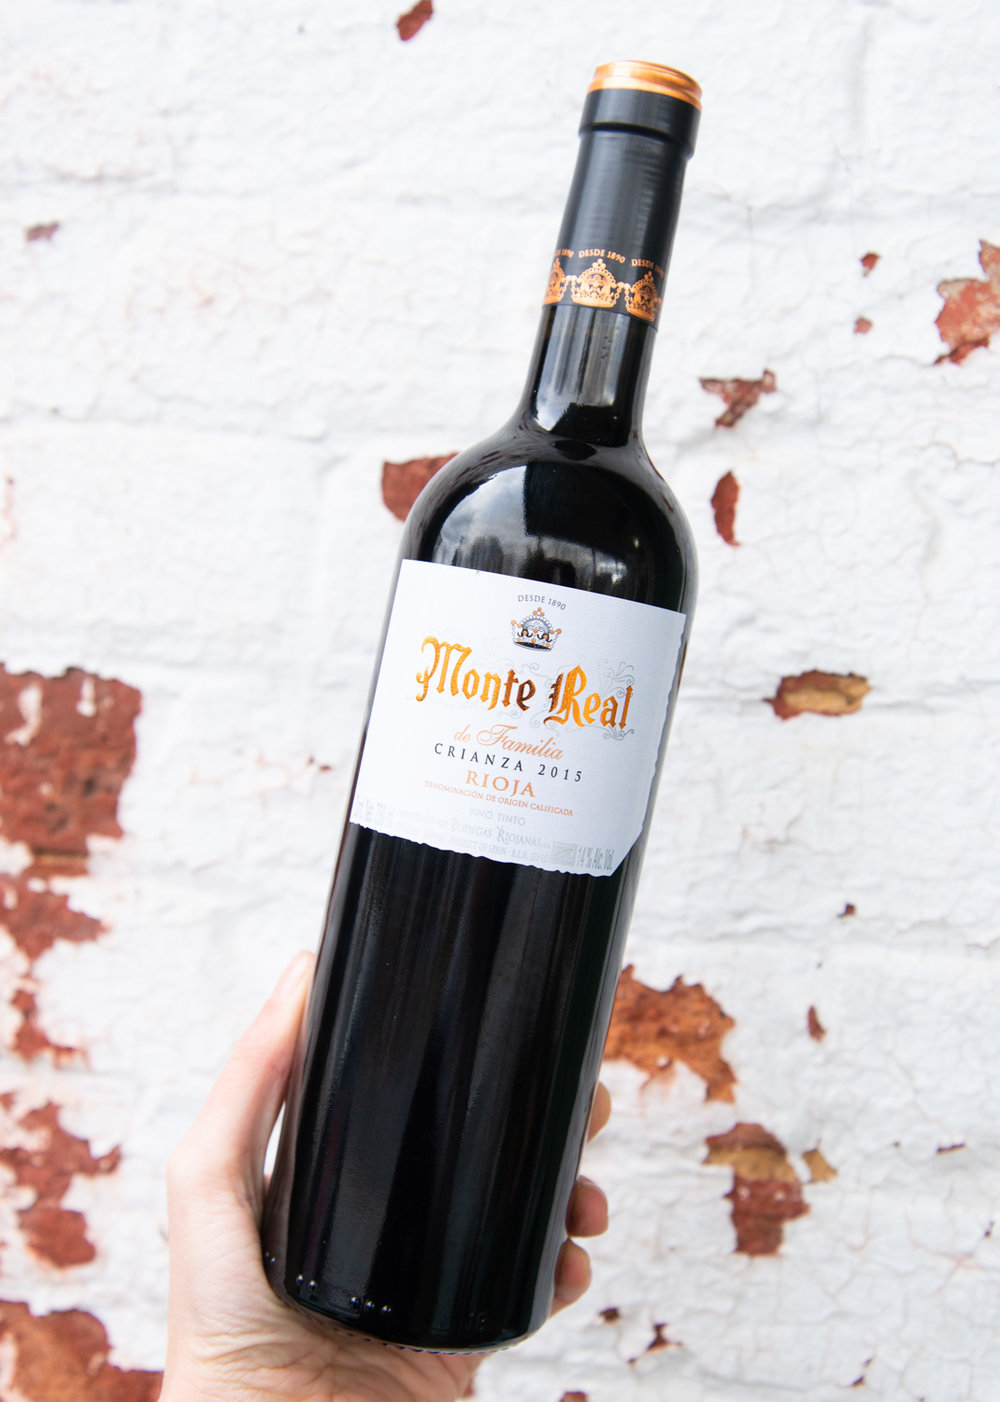 Bodegas Riojanas Monte Real de Familia Crianza 2015 - Retail: $16.95 | Sale $15.25Bodegas Riojanas was founded in 1890 through the union of the Artacho family, long winemaking tradition, and Rafael Carreras. In the glass, ripe aromas border on raisin and hoisin sauce, with savory, baked berry notes. This is decidedly plump and chunky on the palate, with a jammy mouthfeel. Blackberry, chocolate and peppery spice flavors finish oaky in a traditional Rioja way.100% Tempranillo